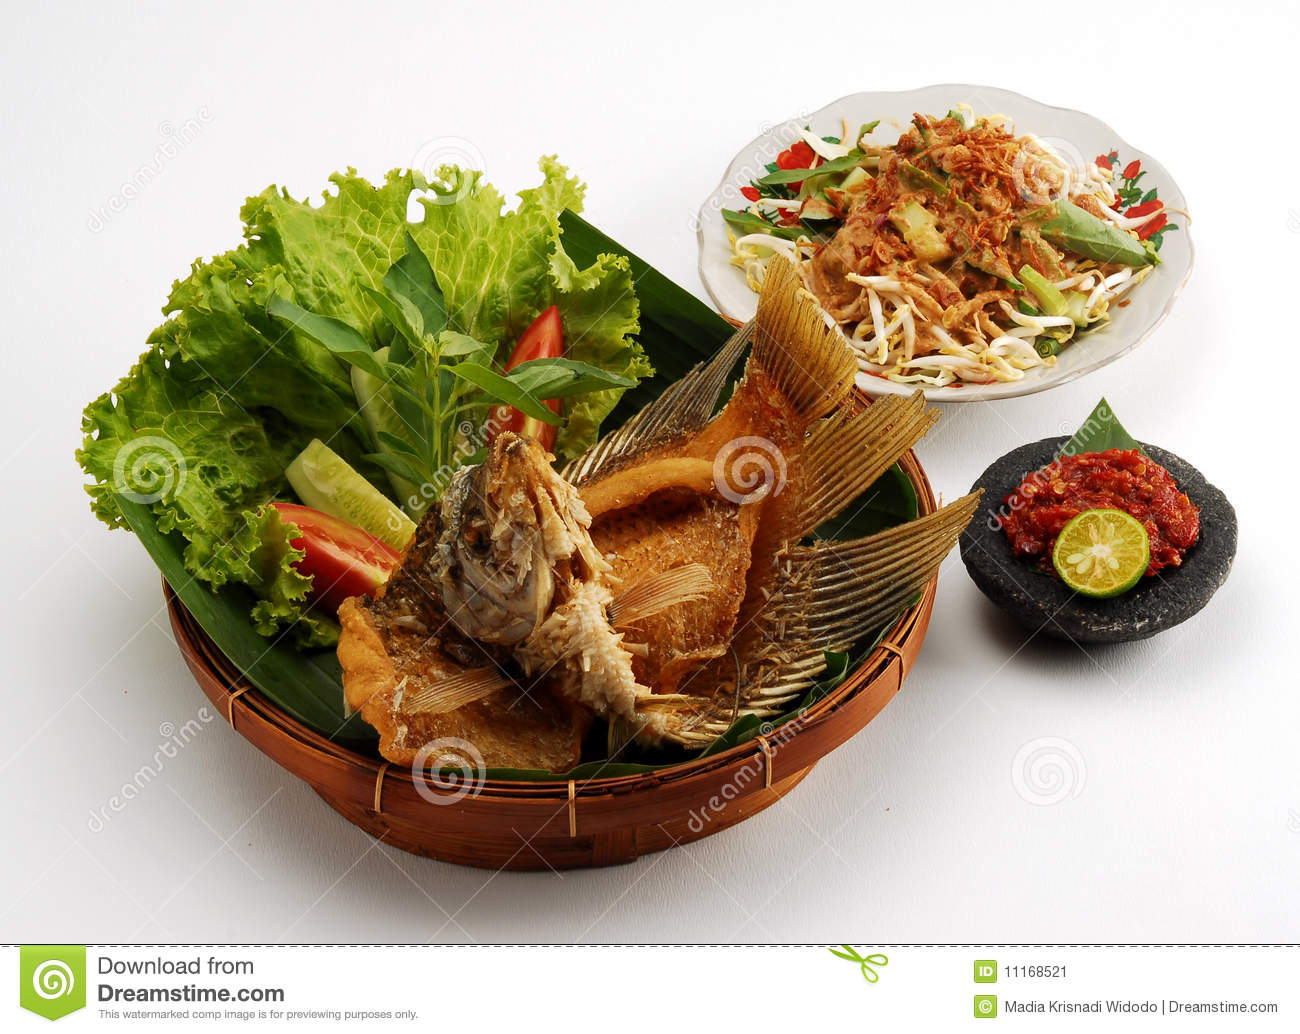 Fried gourami meal stock image image 11168521 for Fried fish nutrition